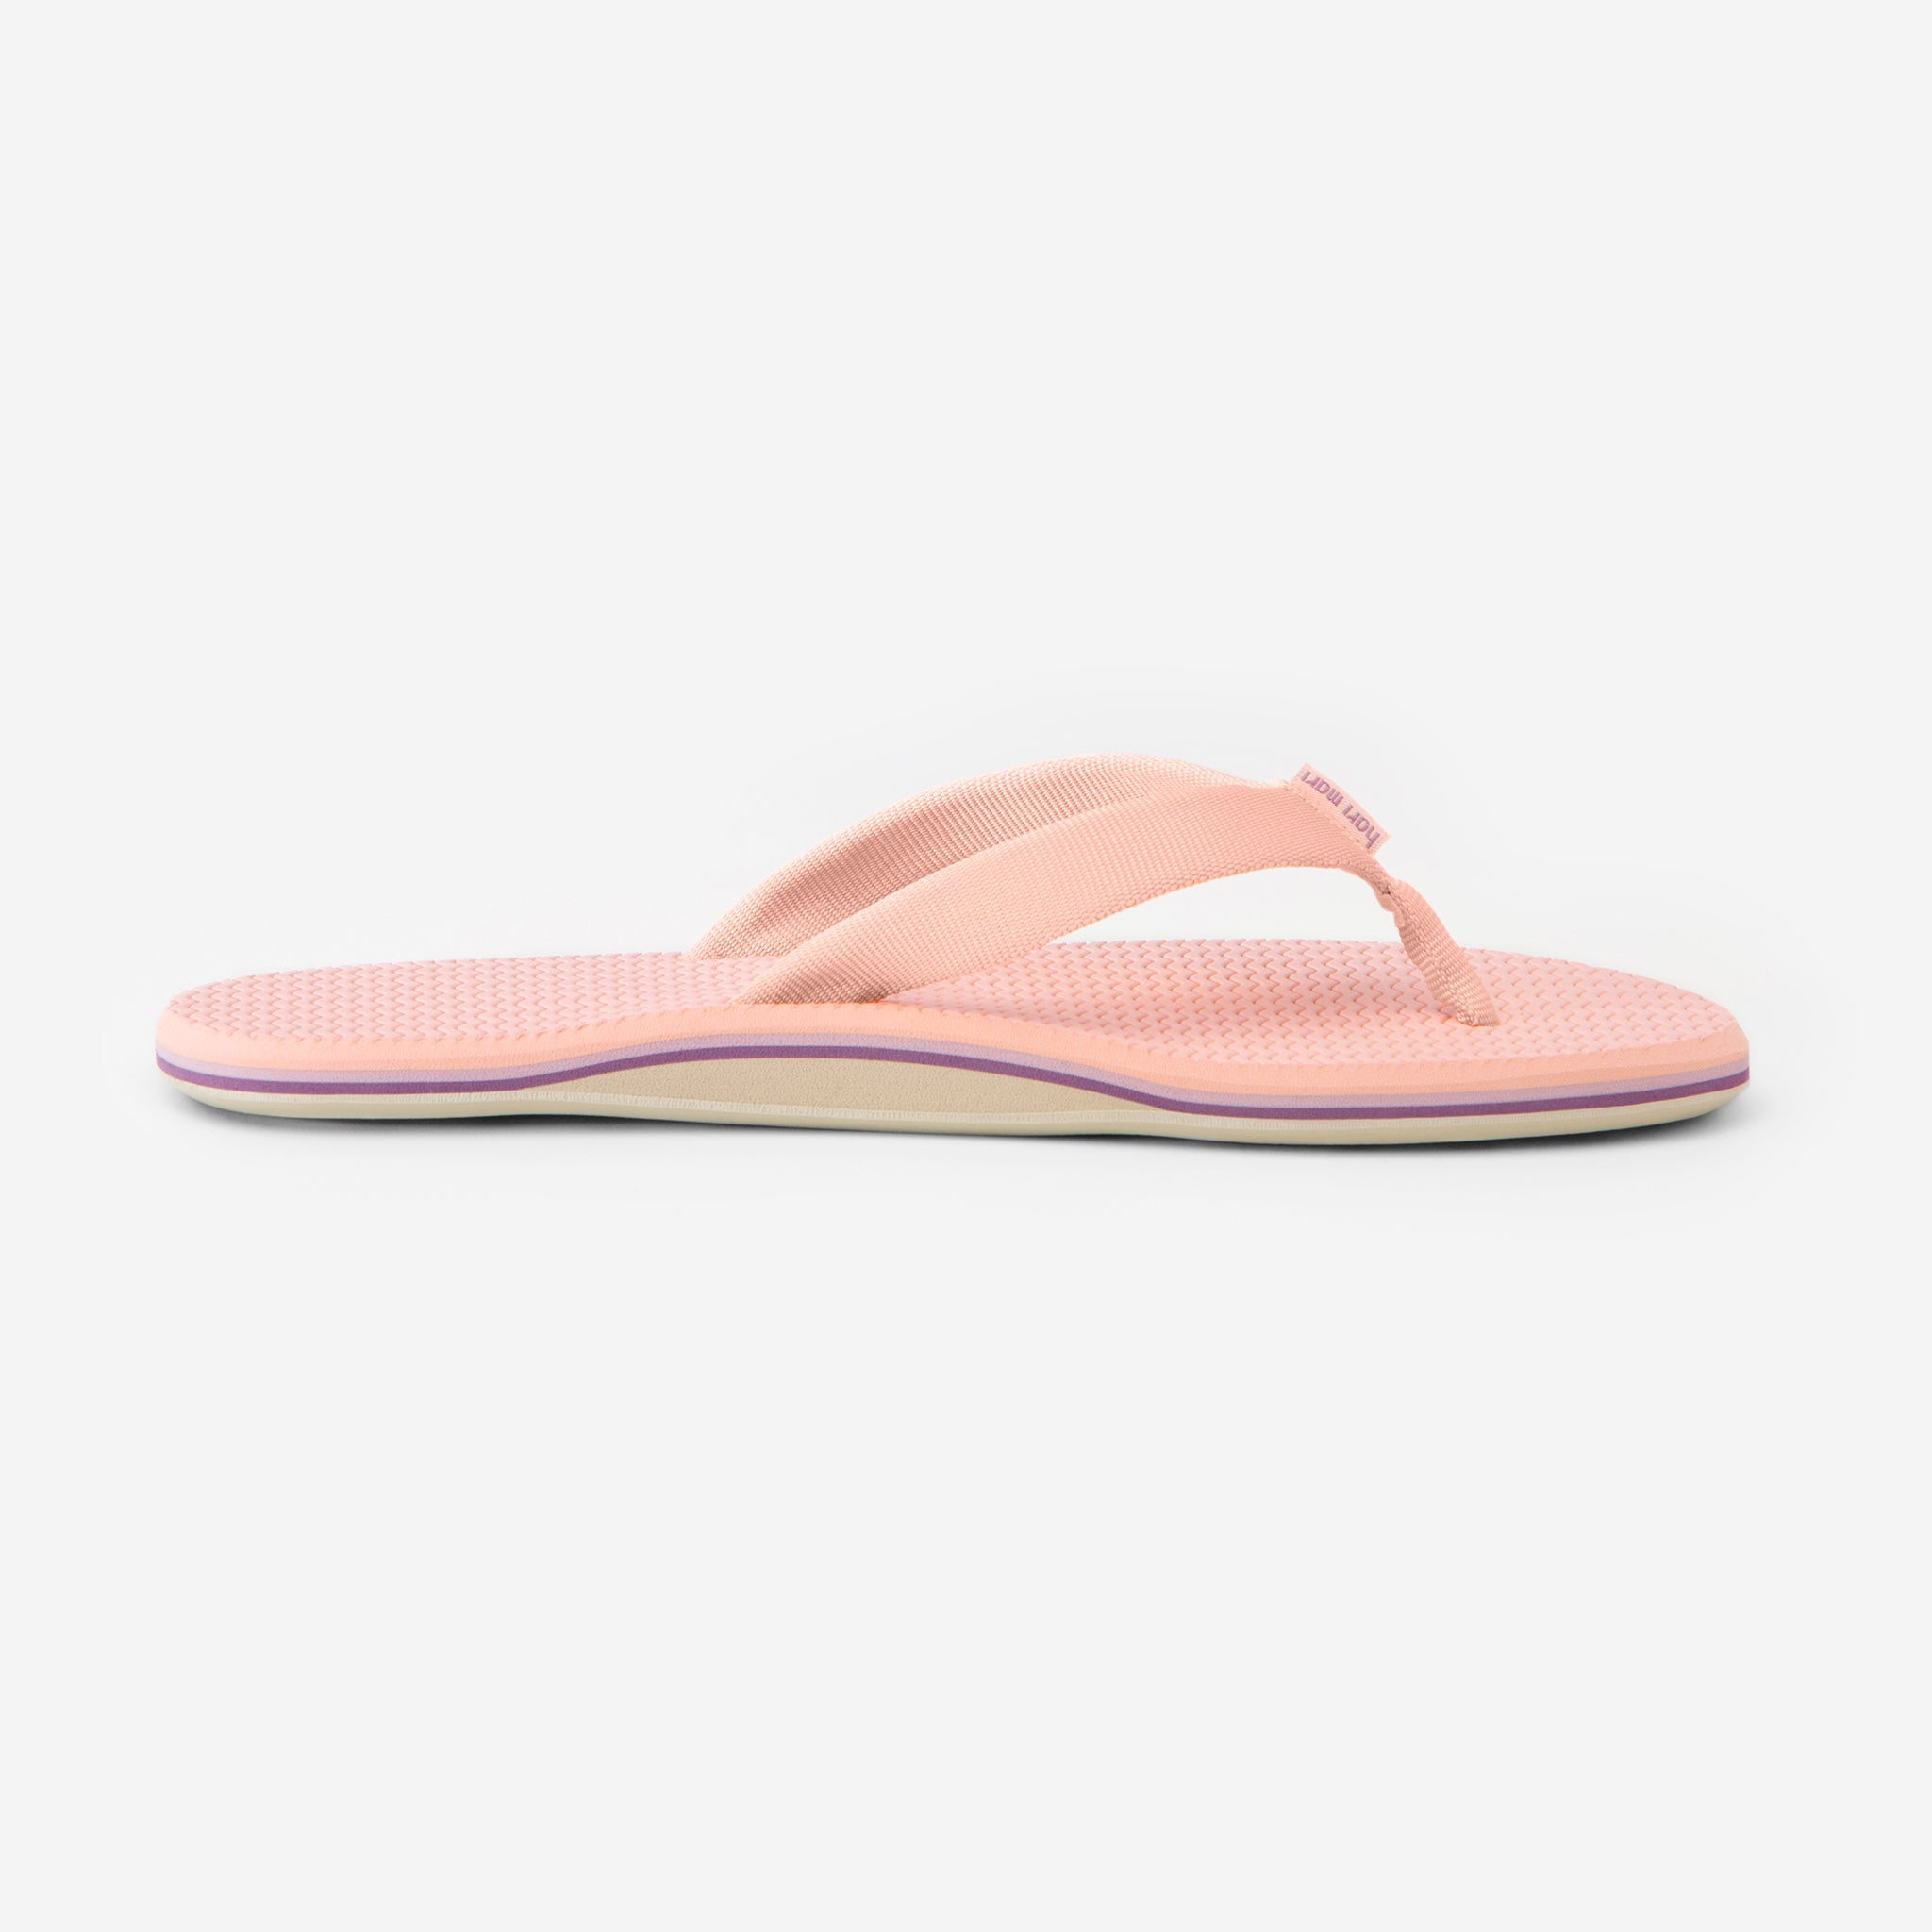 Dunes II-Women's-Blush-Side view